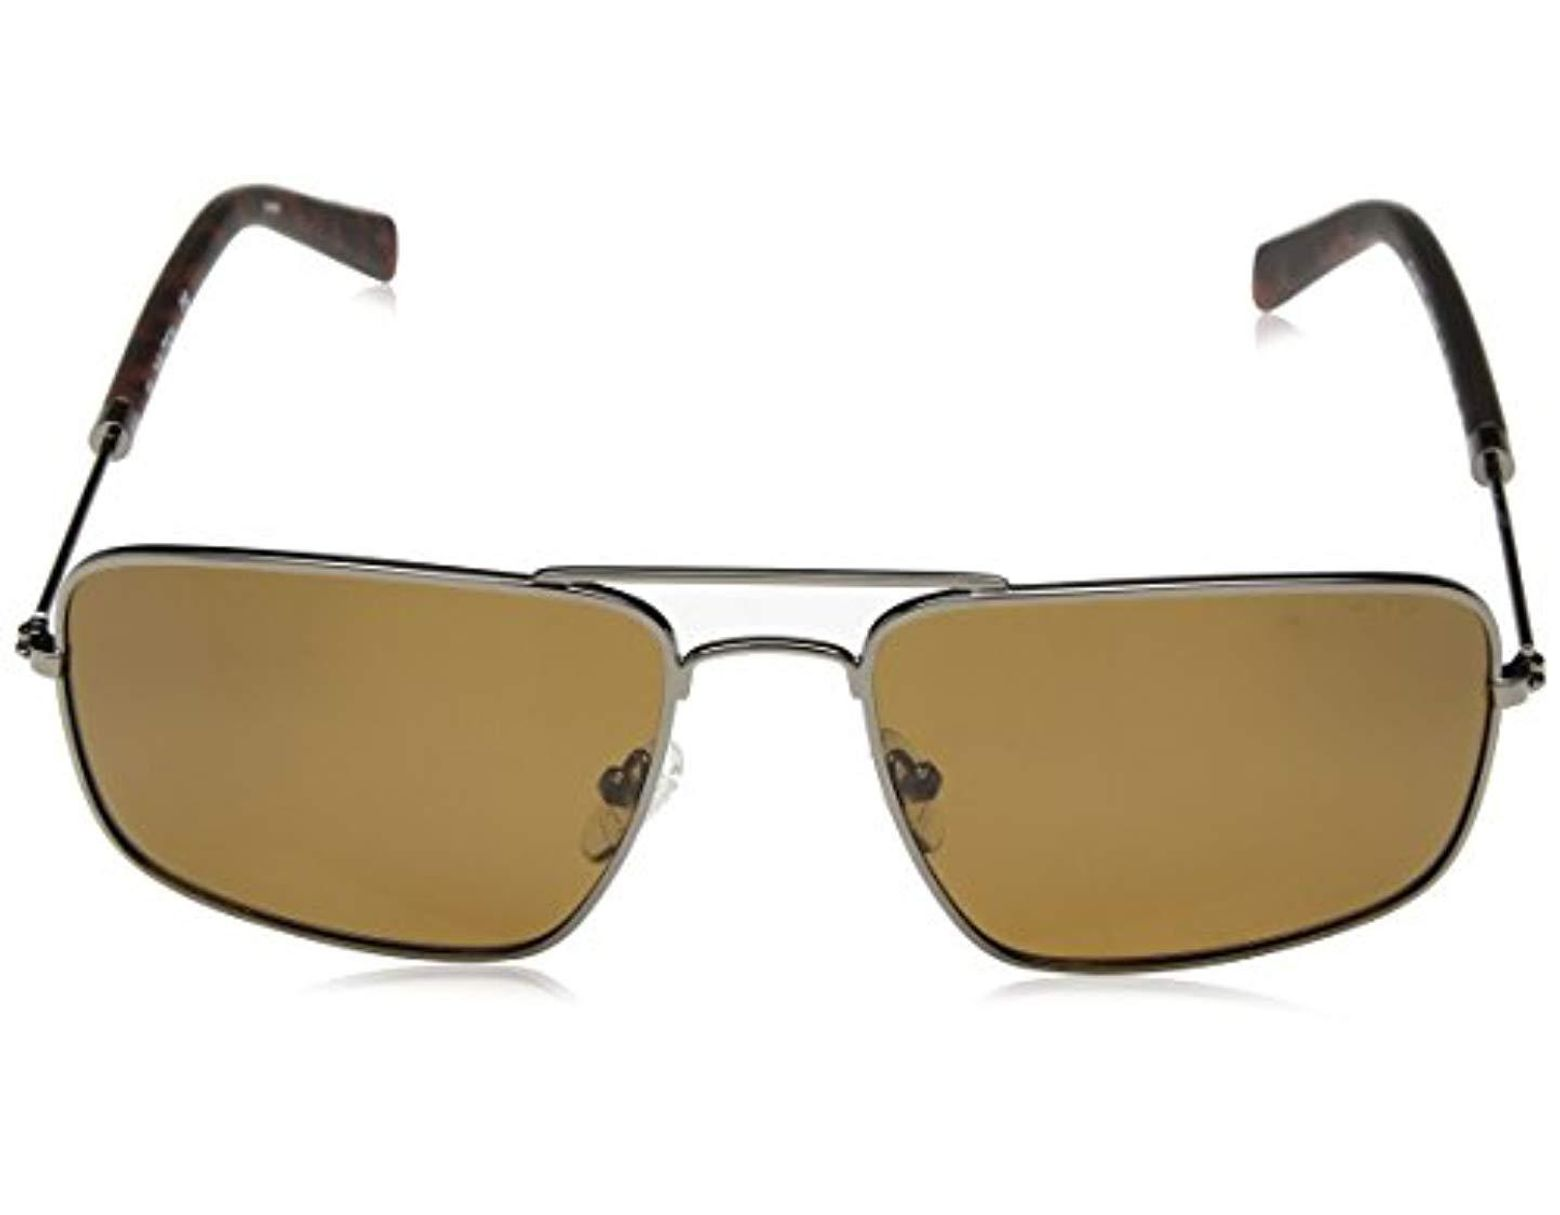 94e755d6 Men's N4632sp Polarized Aviator Sunglasses, Gunmetal, 59 Mm